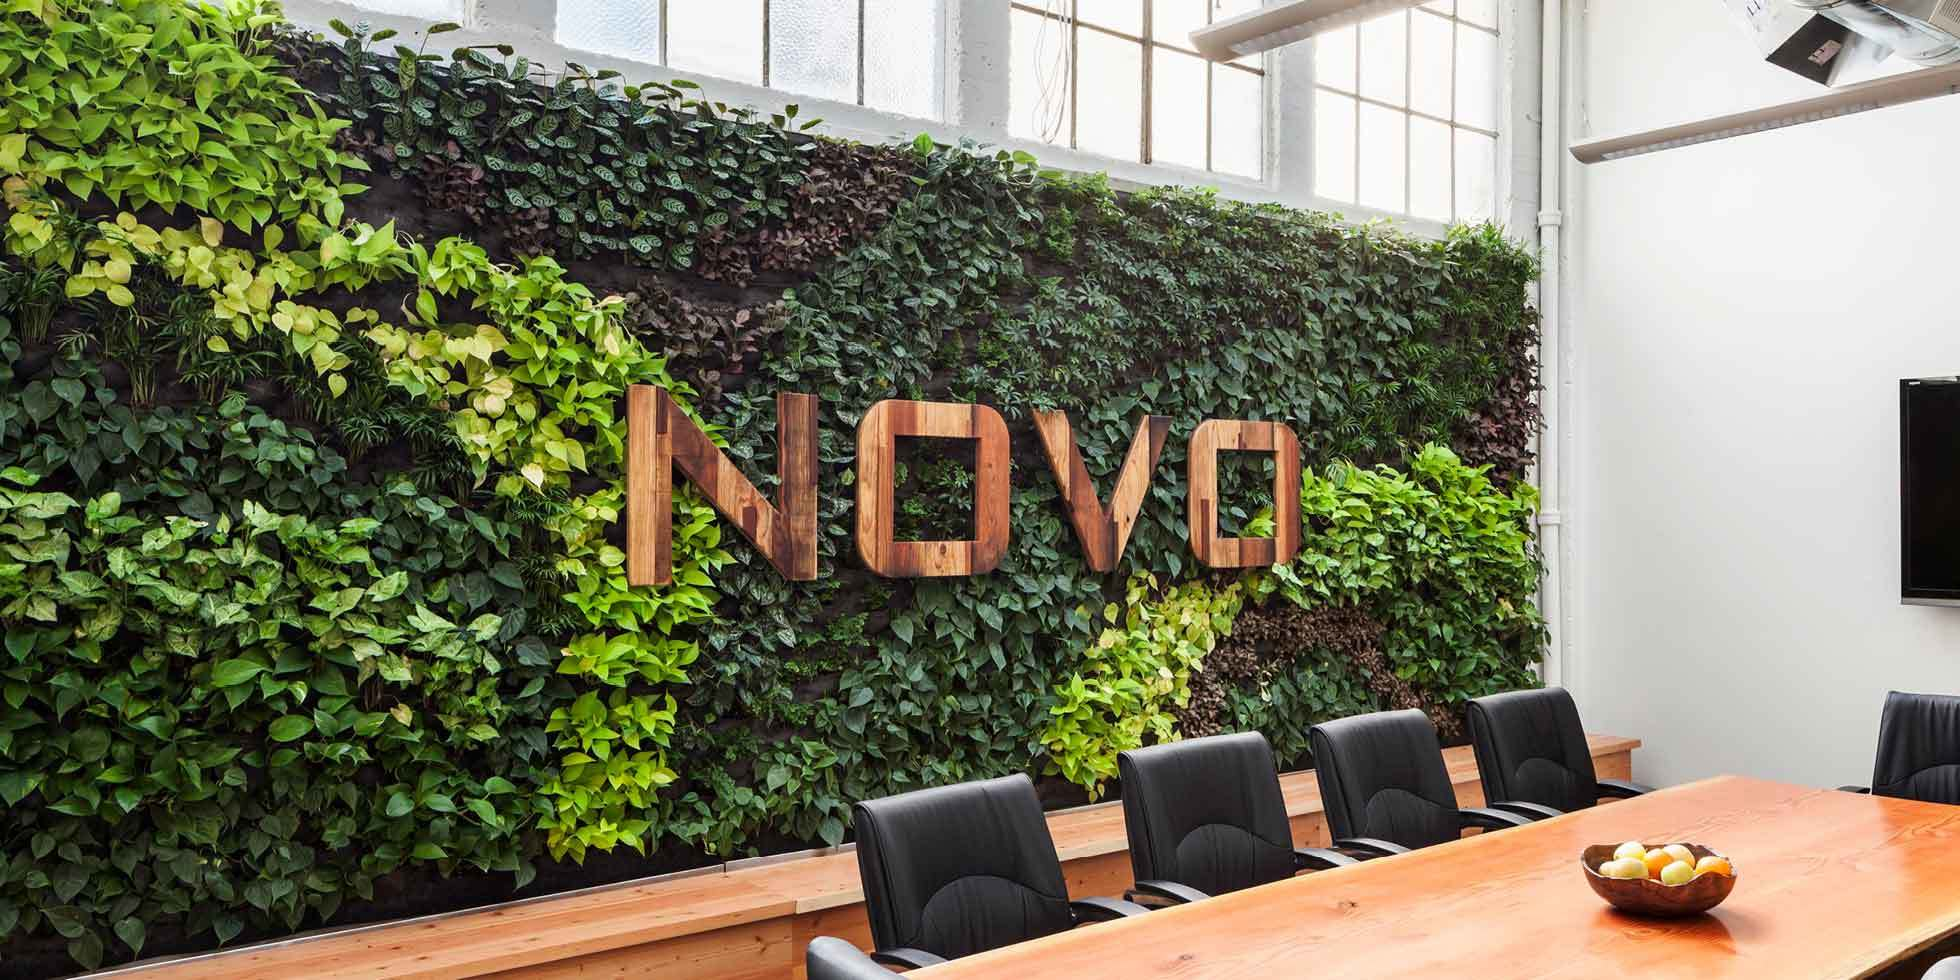 Novo Construction HQ Living Wall by Habitat Horticulture - View 1